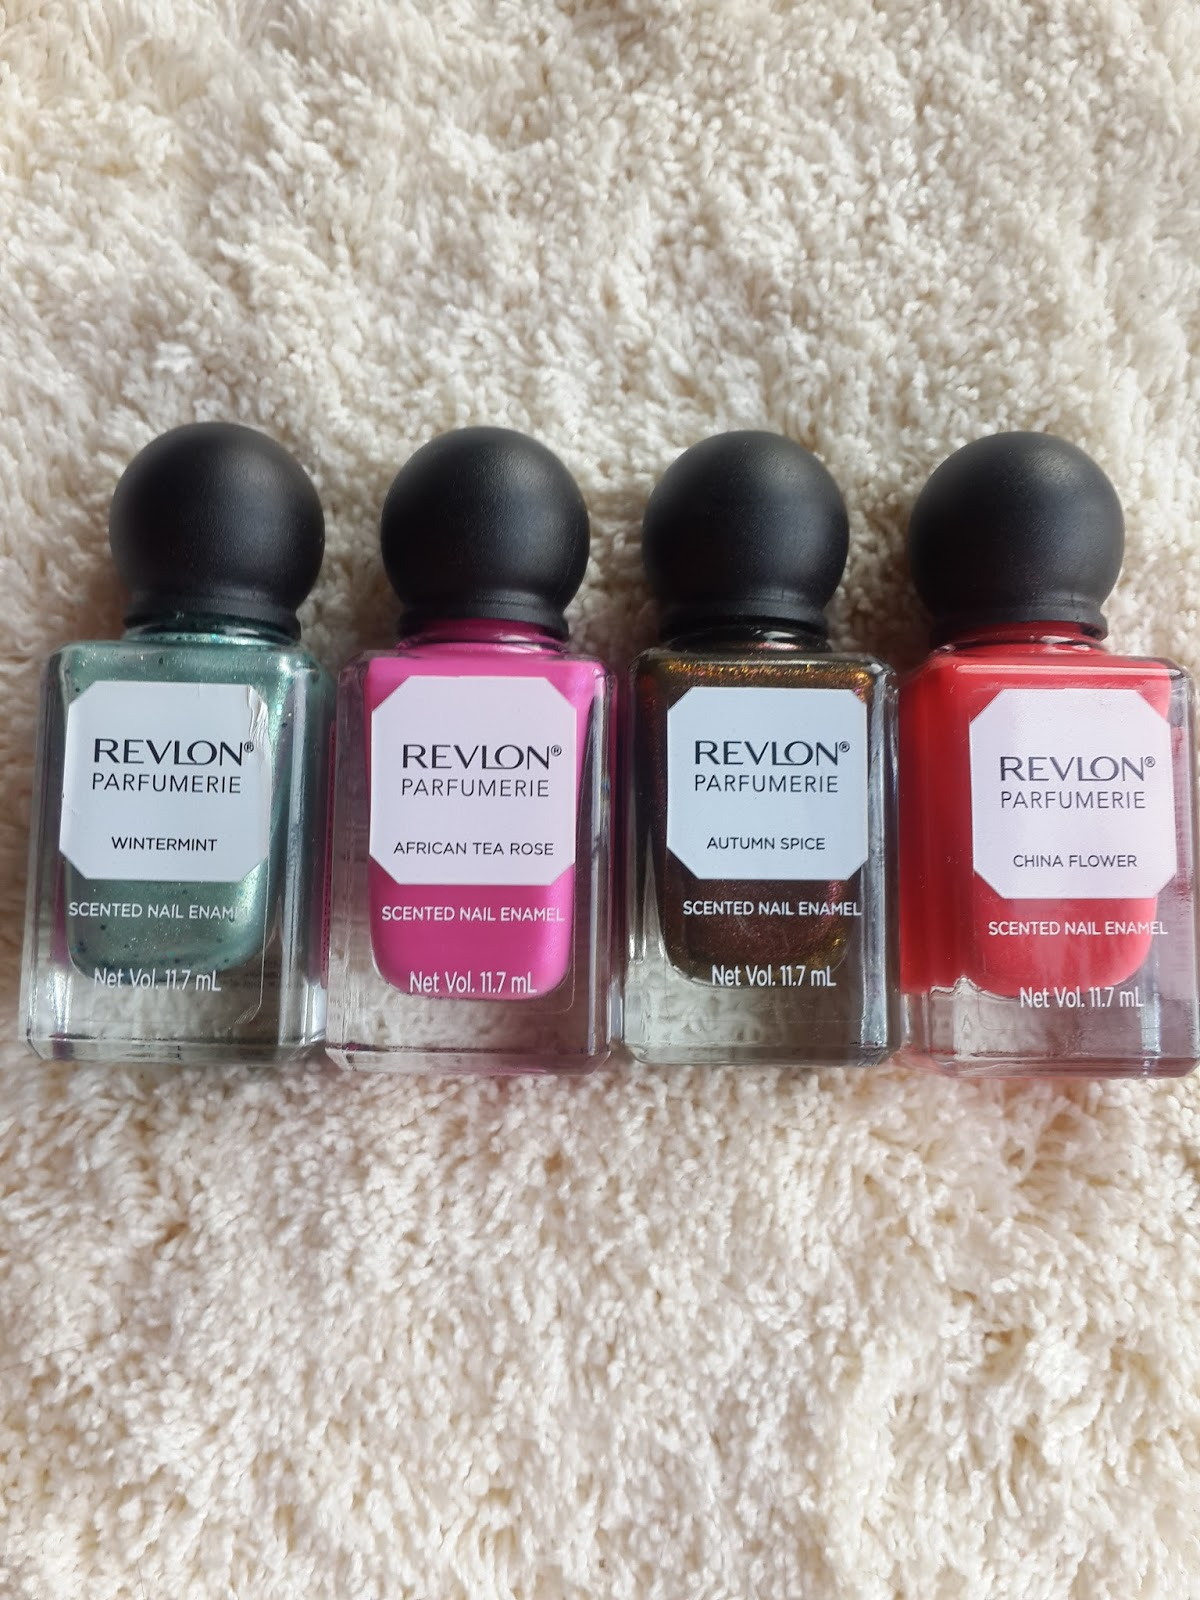 Ridzi makeup revlon parfumerie nail enamel review autumn spice i ended up getting 4 shades autumn spice is bronze color having purple green glitters with cinnamon vanilla scent perfect for winter season i totally loved izmirmasajfo